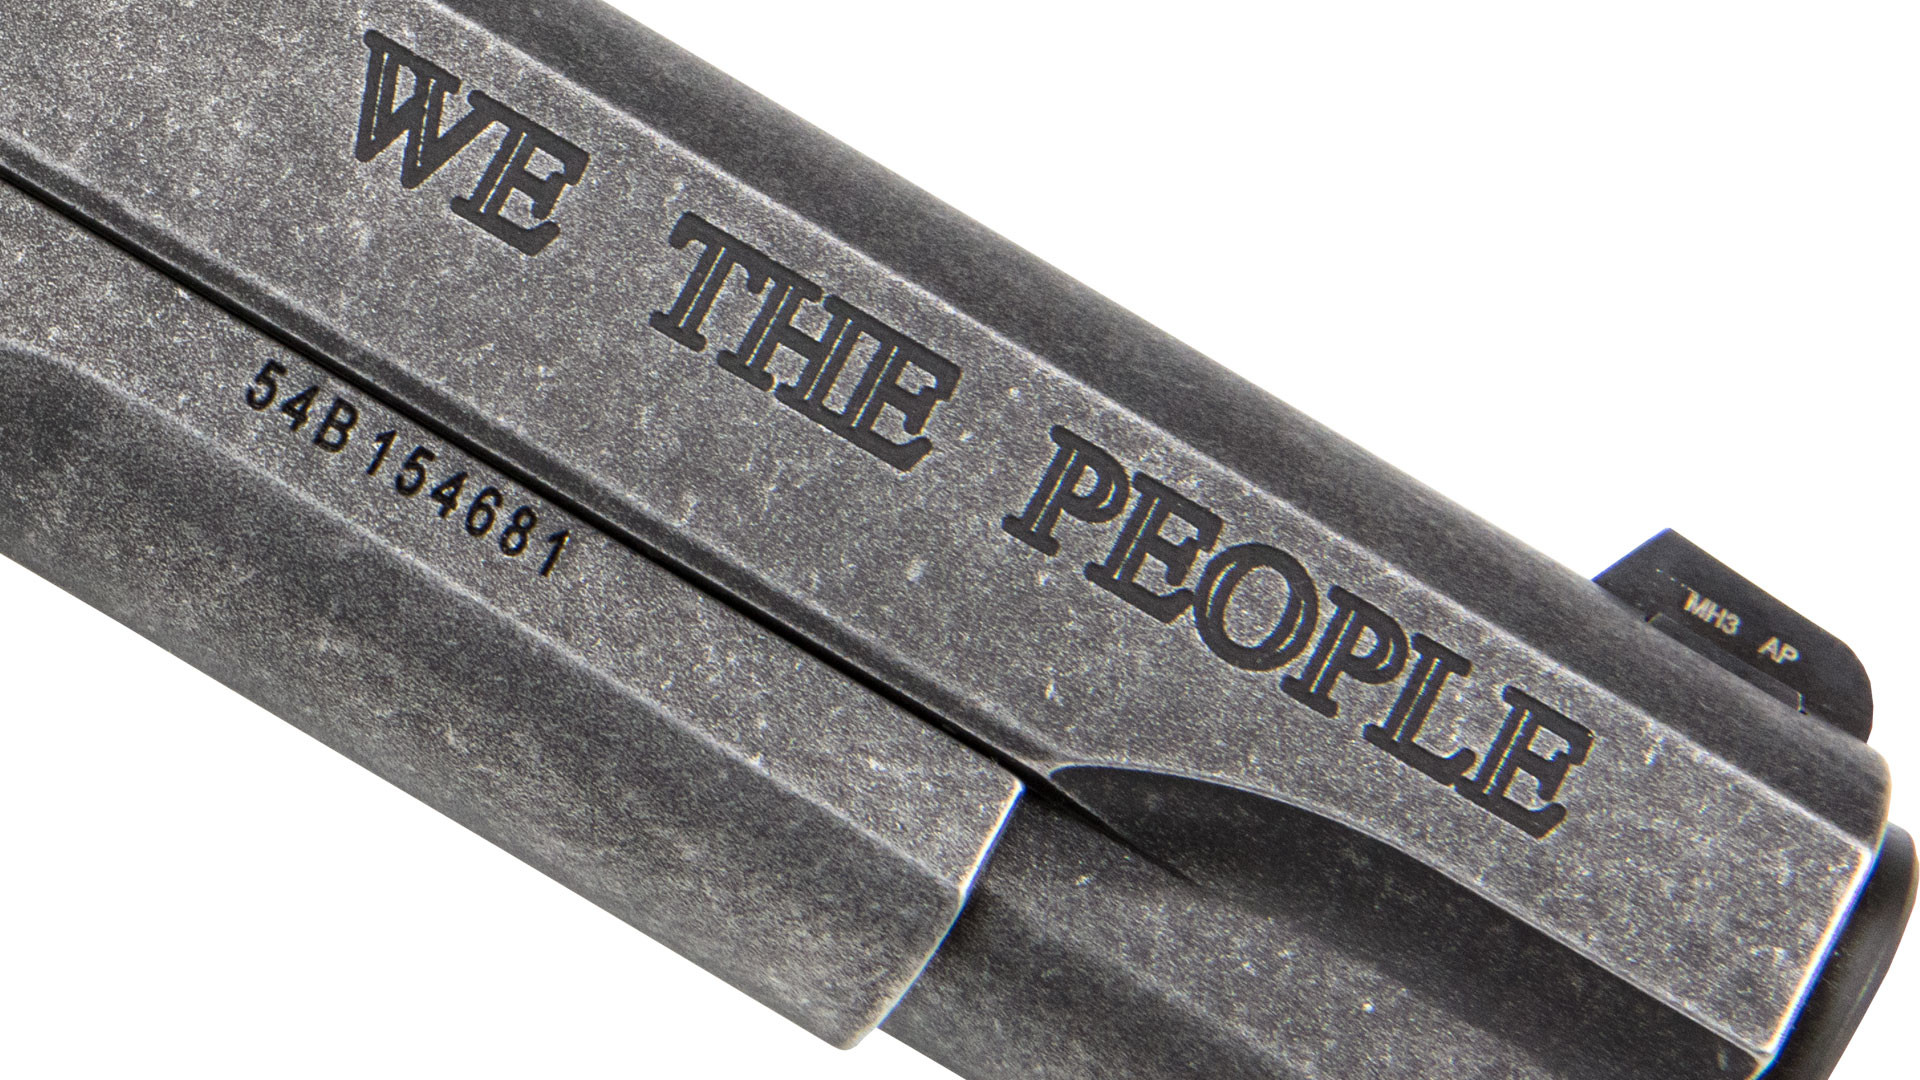 We The People Engraving